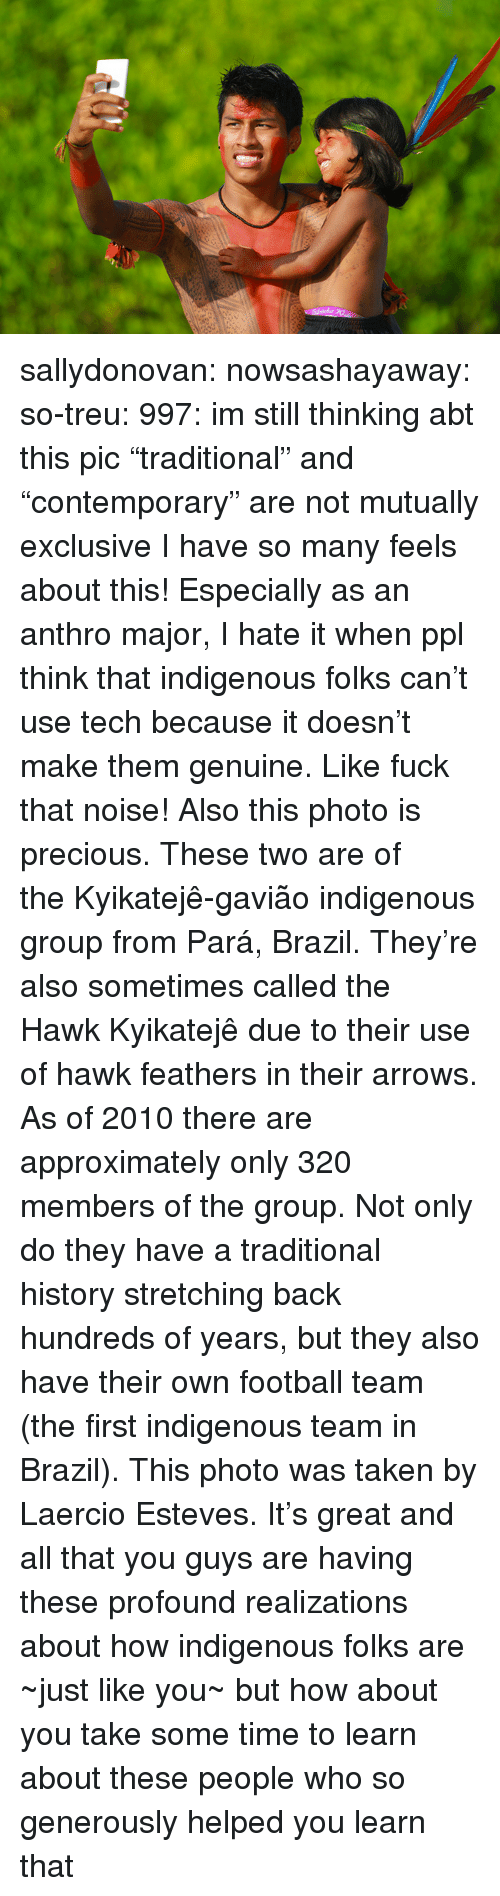 """football team: sallydonovan: nowsashayaway:  so-treu:  997:  im still thinking abt this pic  """"traditional"""" and """"contemporary"""" are not mutually exclusive  I have so many feels about this! Especially as an anthro major, I hate it when ppl think that indigenous folks can't use tech because it doesn't make them genuine. Like fuck that noise! Also this photo is precious.  These two are of theKyikatejê-gavião indigenous group fromPará, Brazil. They're also sometimes called the HawkKyikatejê due to their use of hawk feathers in their arrows. As of 2010 there are approximately only 320 members of the group. Not only do they have a traditional history stretching back hundreds of years, but they also have their own football team (the first indigenous team in Brazil).  This photo was taken by Laercio Esteves. It's great and all that you guys are having these profound realizations about how indigenous folks are ~just like you~ but how about you take some time to learn about these people who so generously helped you learn that"""